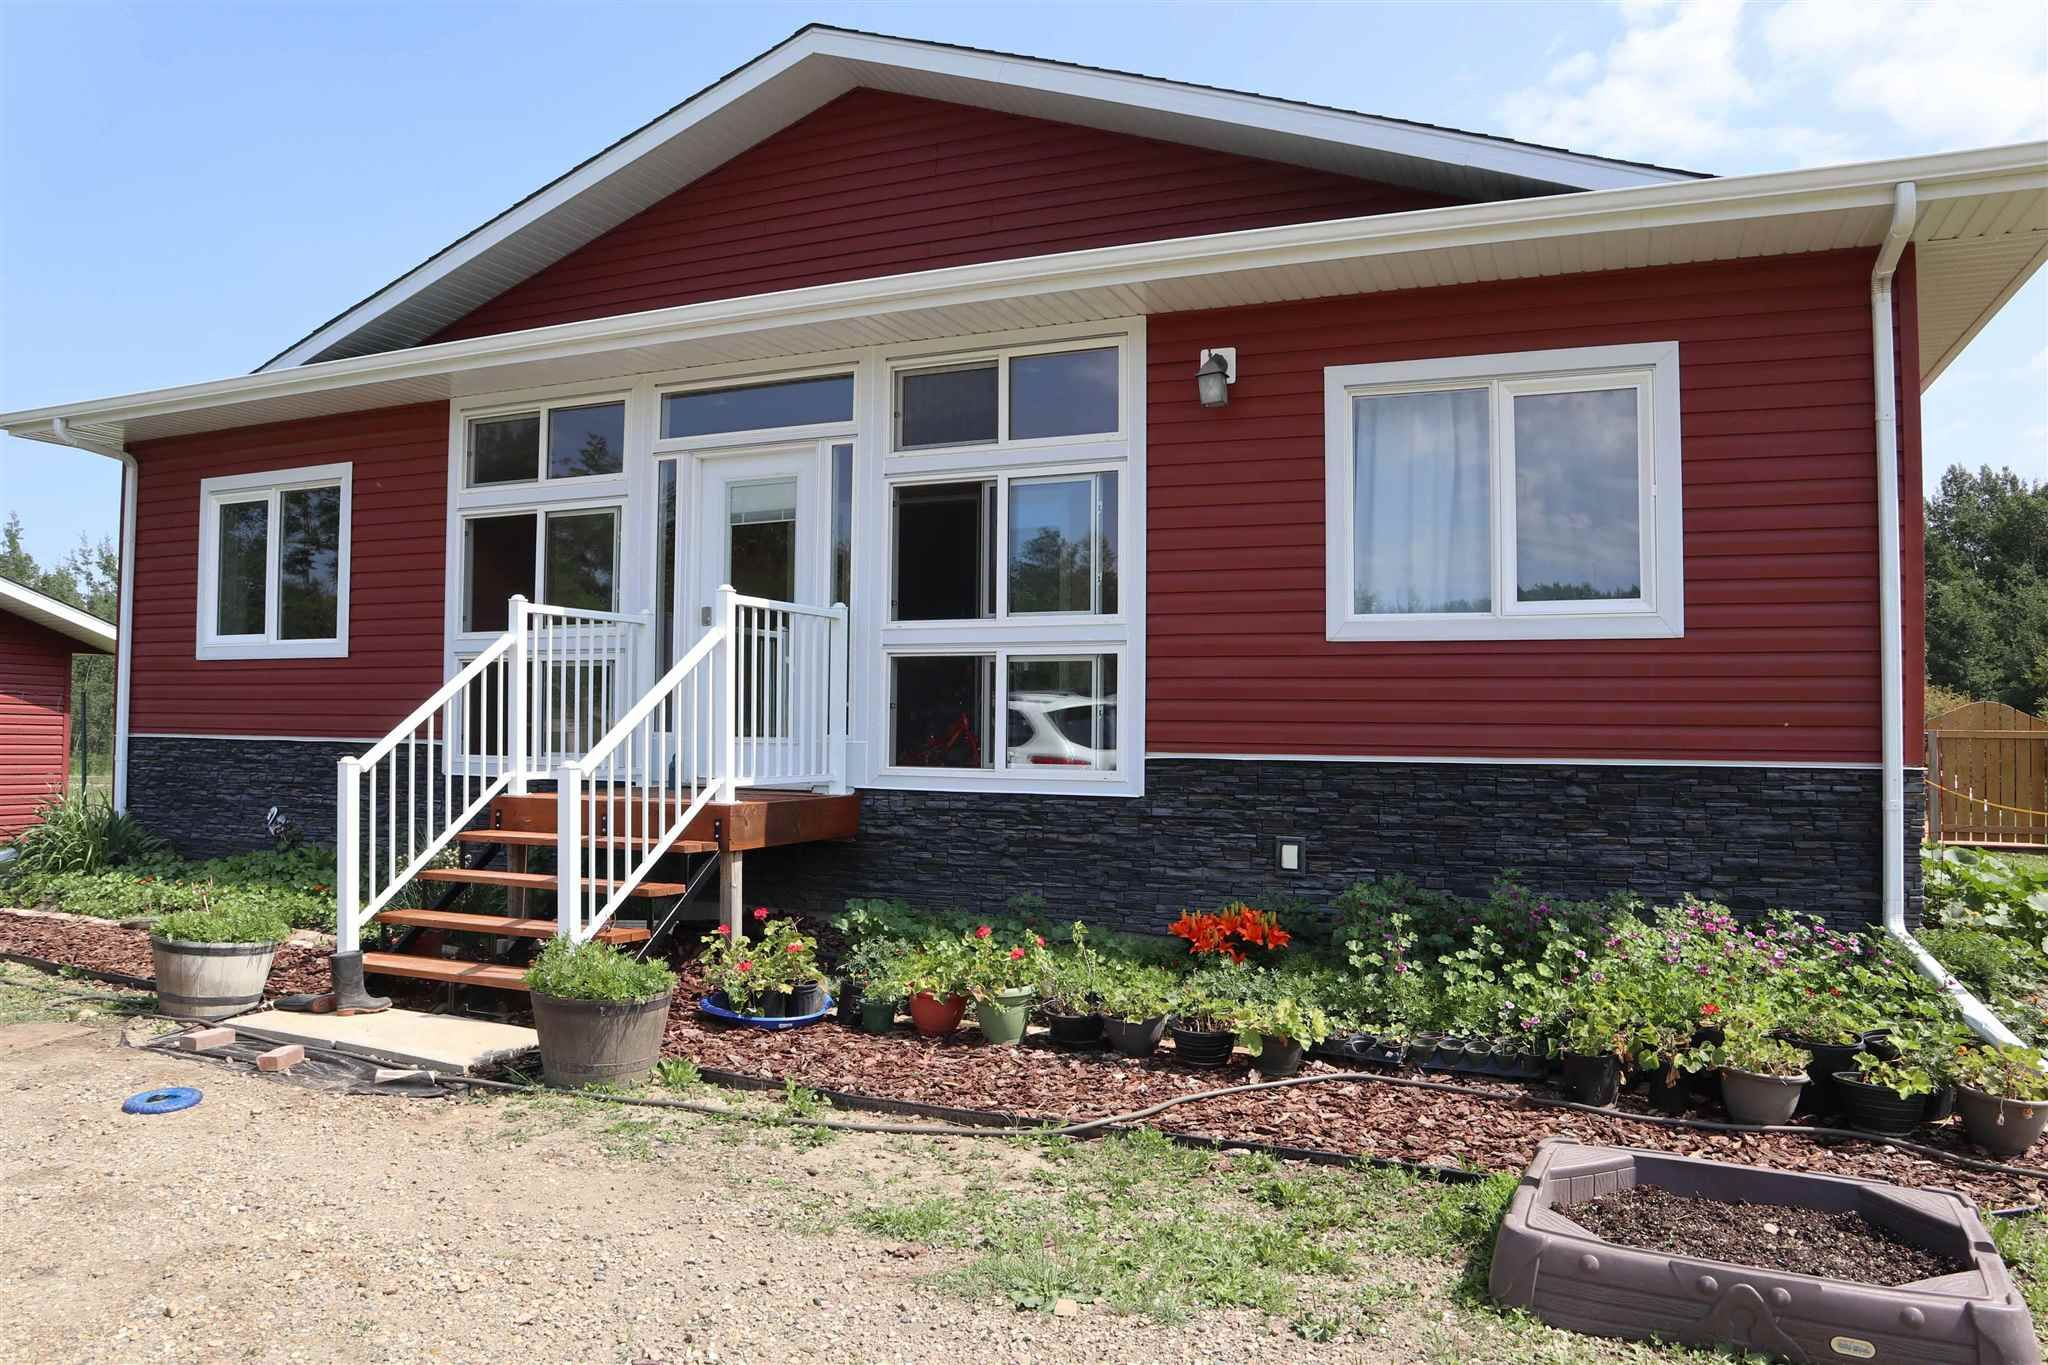 Main Photo: 15070 HWY 771: Rural Wetaskiwin County House for sale : MLS®# E4254089